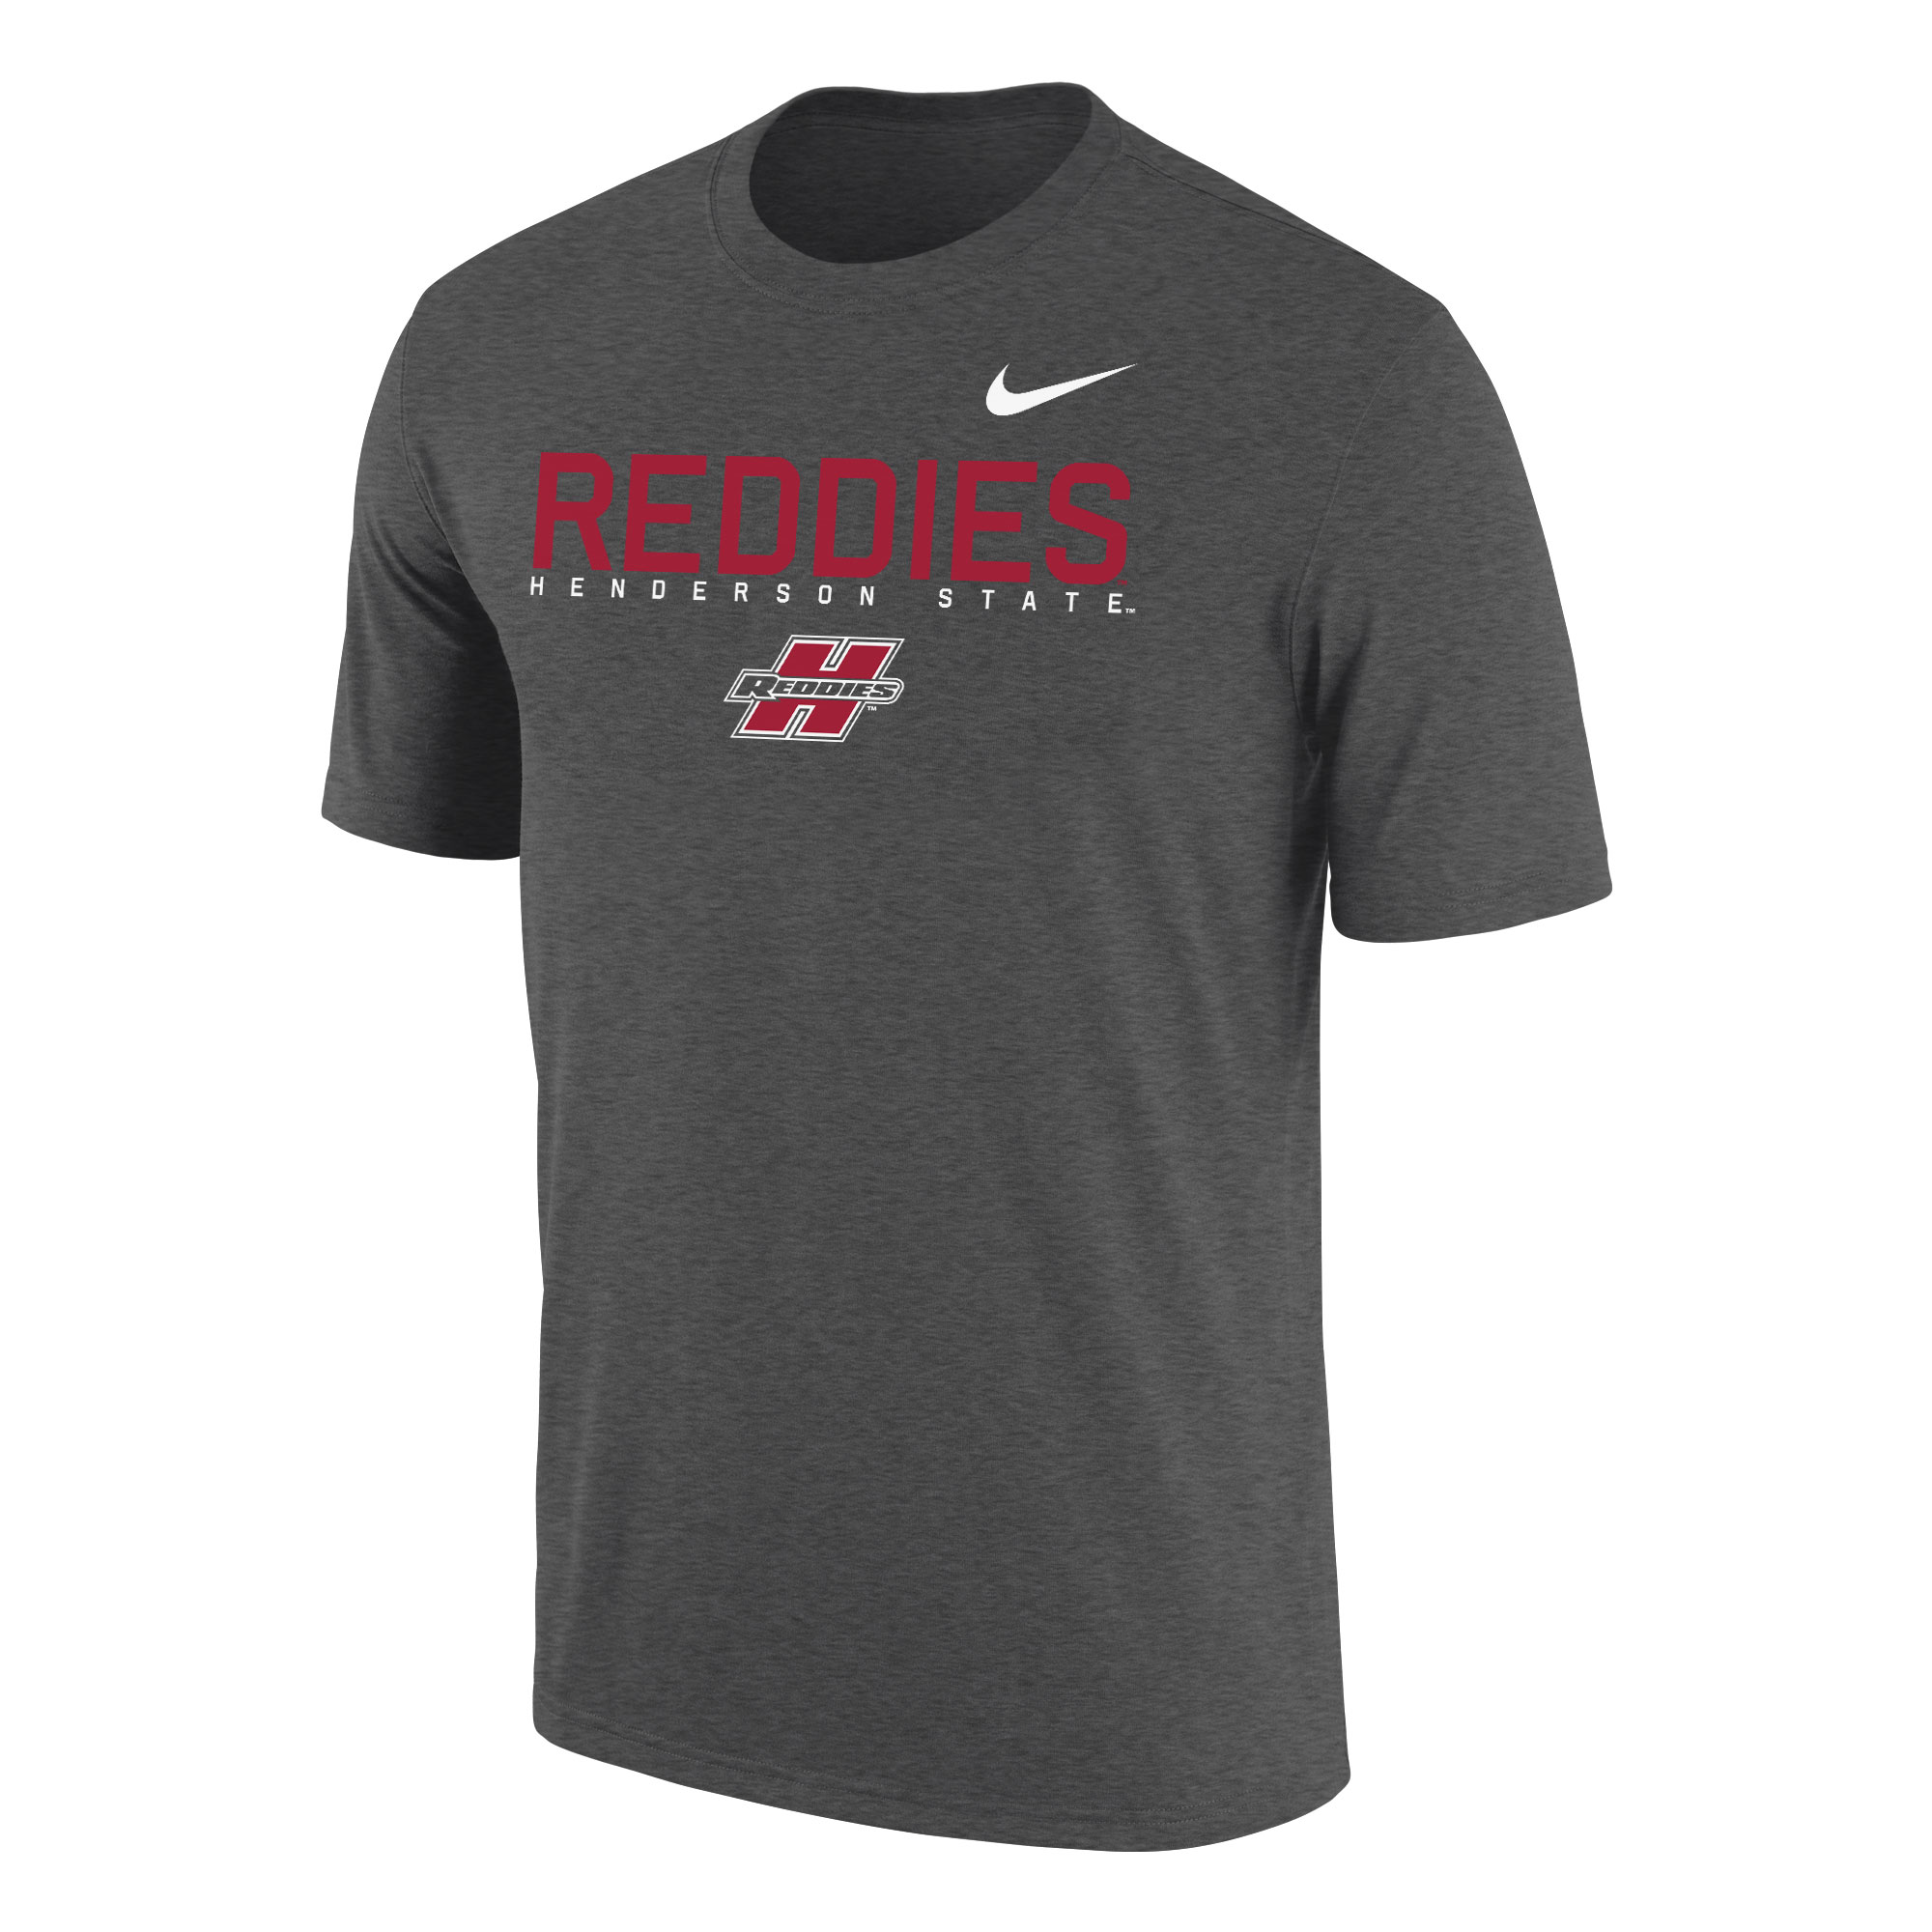 Nike Dri-Fit Reddies Cotton Tee